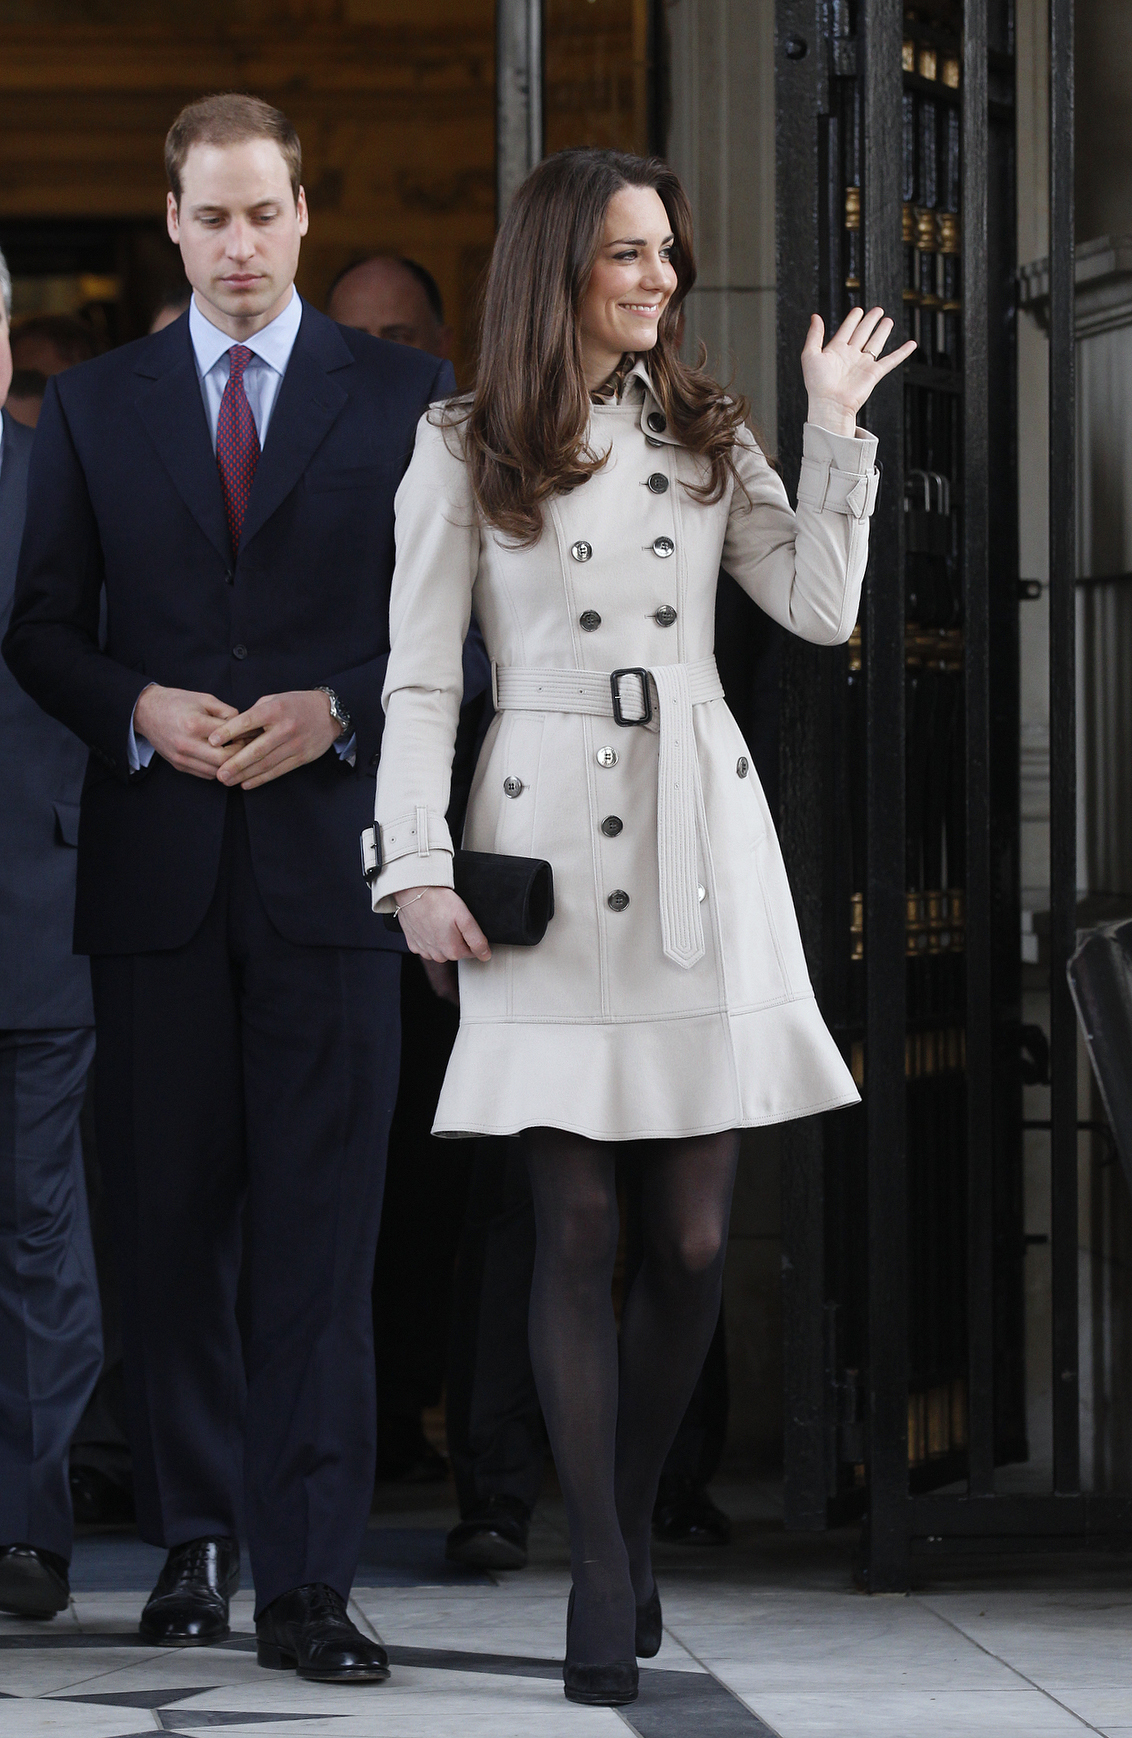 <strong>Burberry in Belfast</strong>                                   On a trip to Northern Ireland on March 8, 2011, Middleton wore a trench coat by Burberry, a British design house. The jacket, like many of Middleton's clothing pieces, sold out online within a day of her appearance in it.